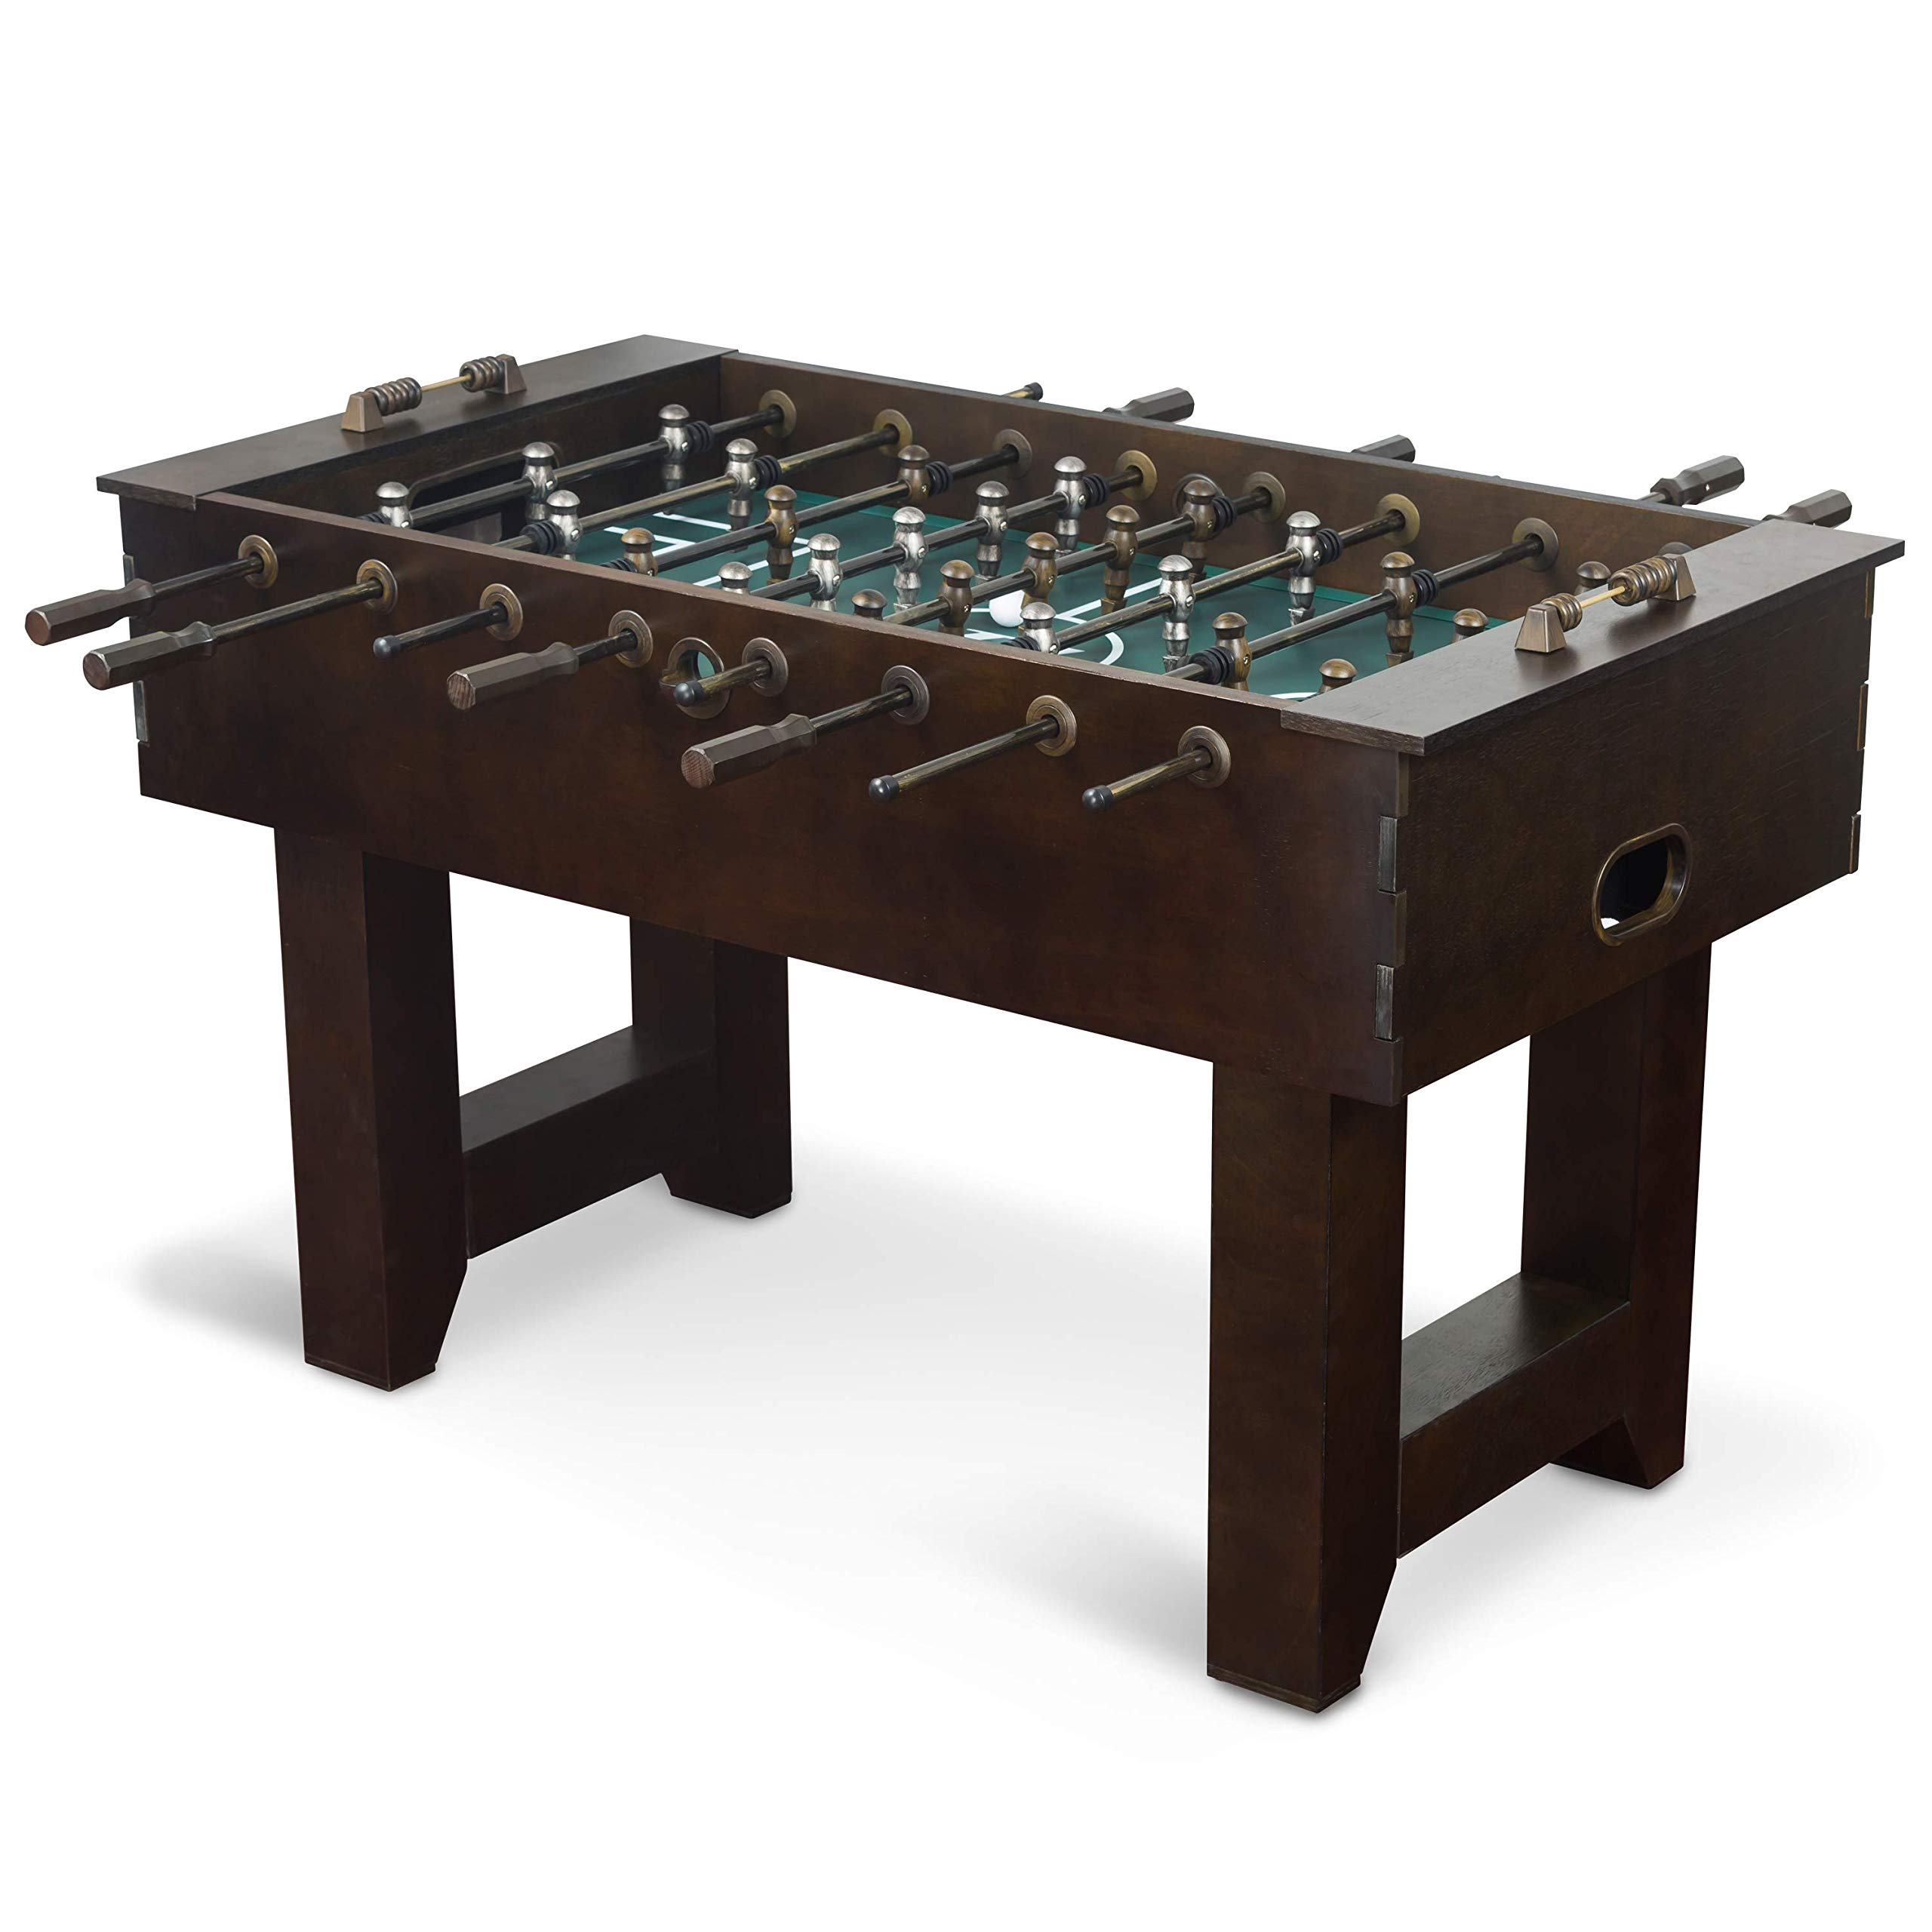 EastPoint Sports Hunter Foosball Table Game - 57 inches - Features Steel Player Rods, Bead Style Scoring and Includes 2 Foosball Balls by EastPoint Sports